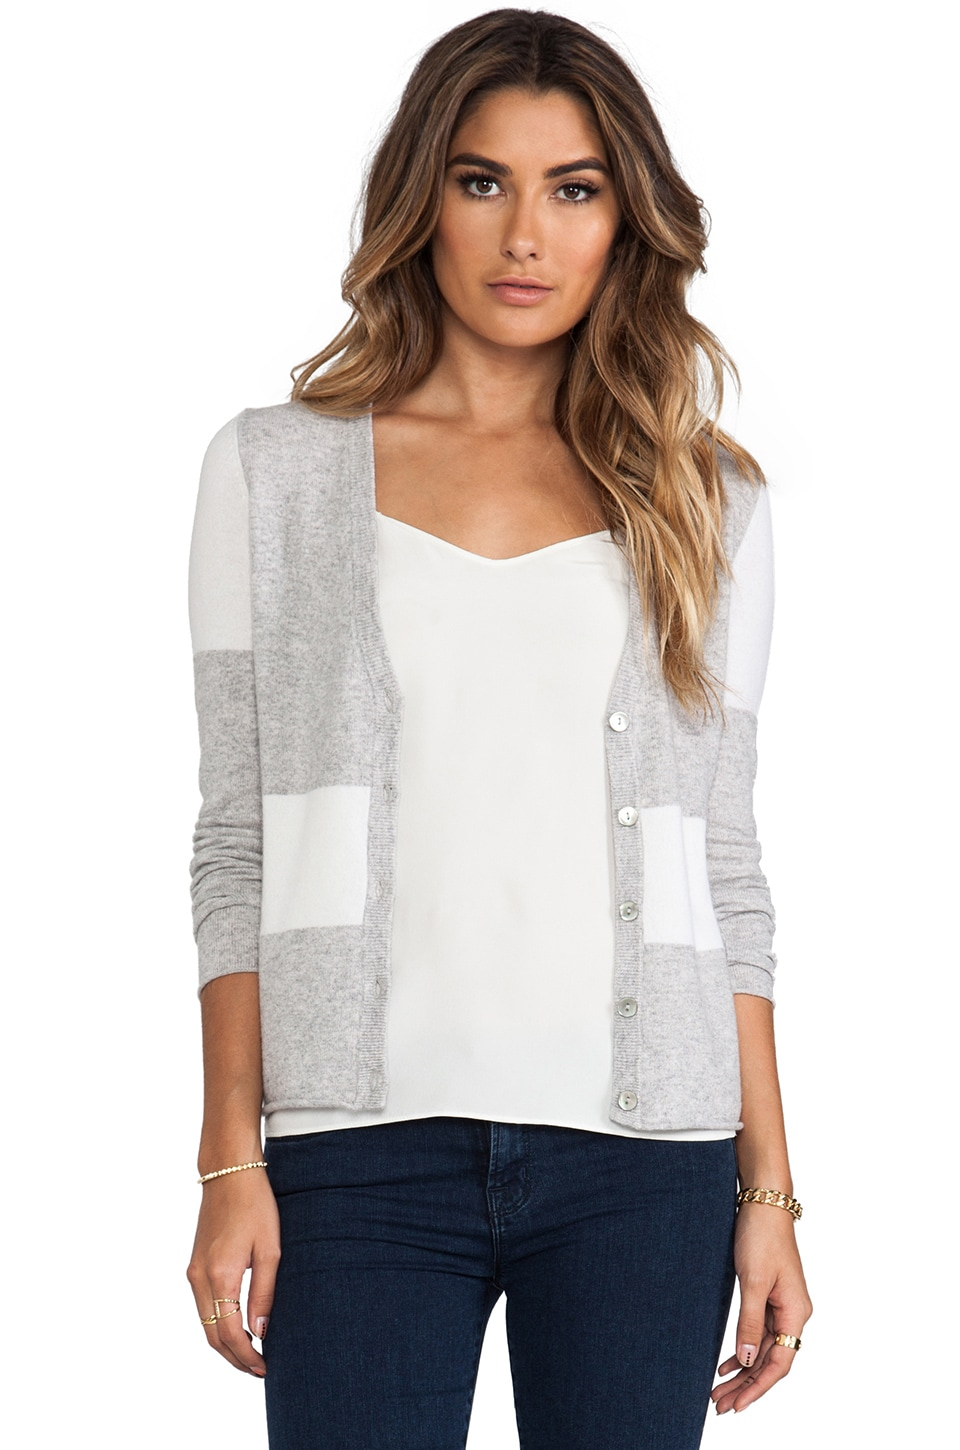 Autumn Cashmere Color Block V-Neck Cardigan in Fog & White